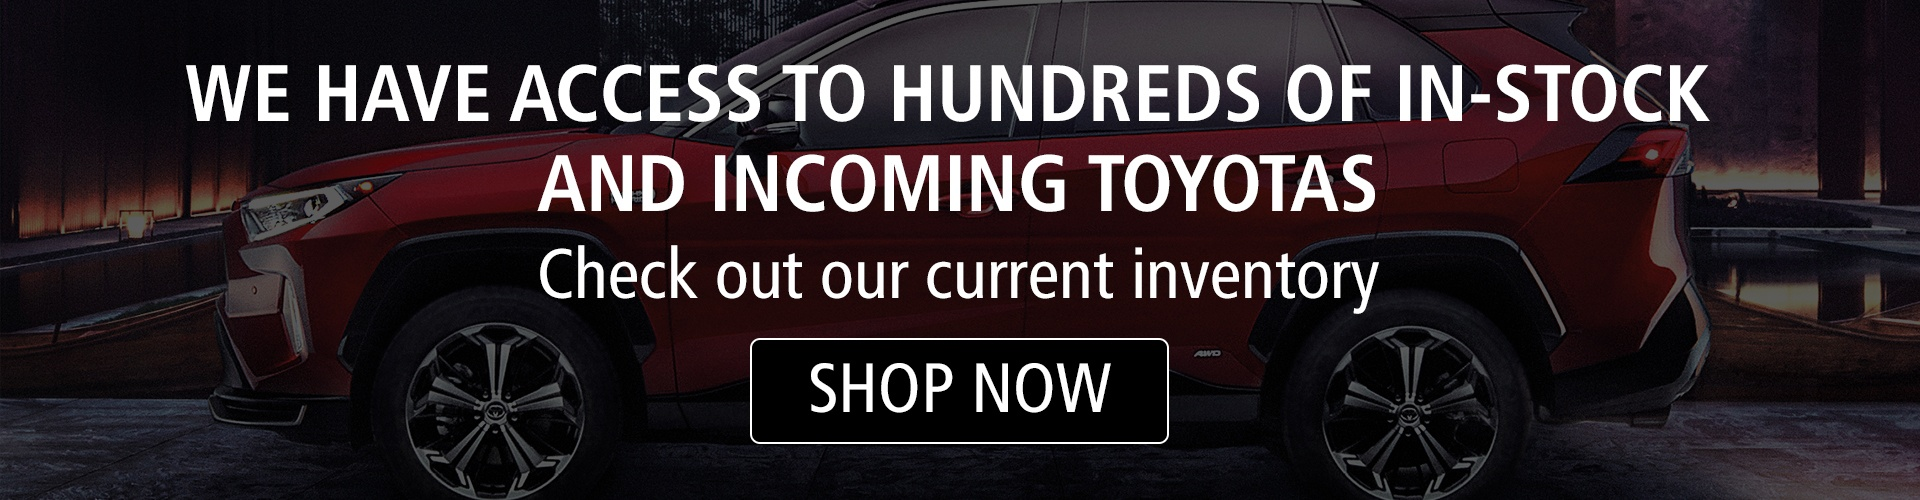 We have access to hundreds of in-stock and incoming Toyotas